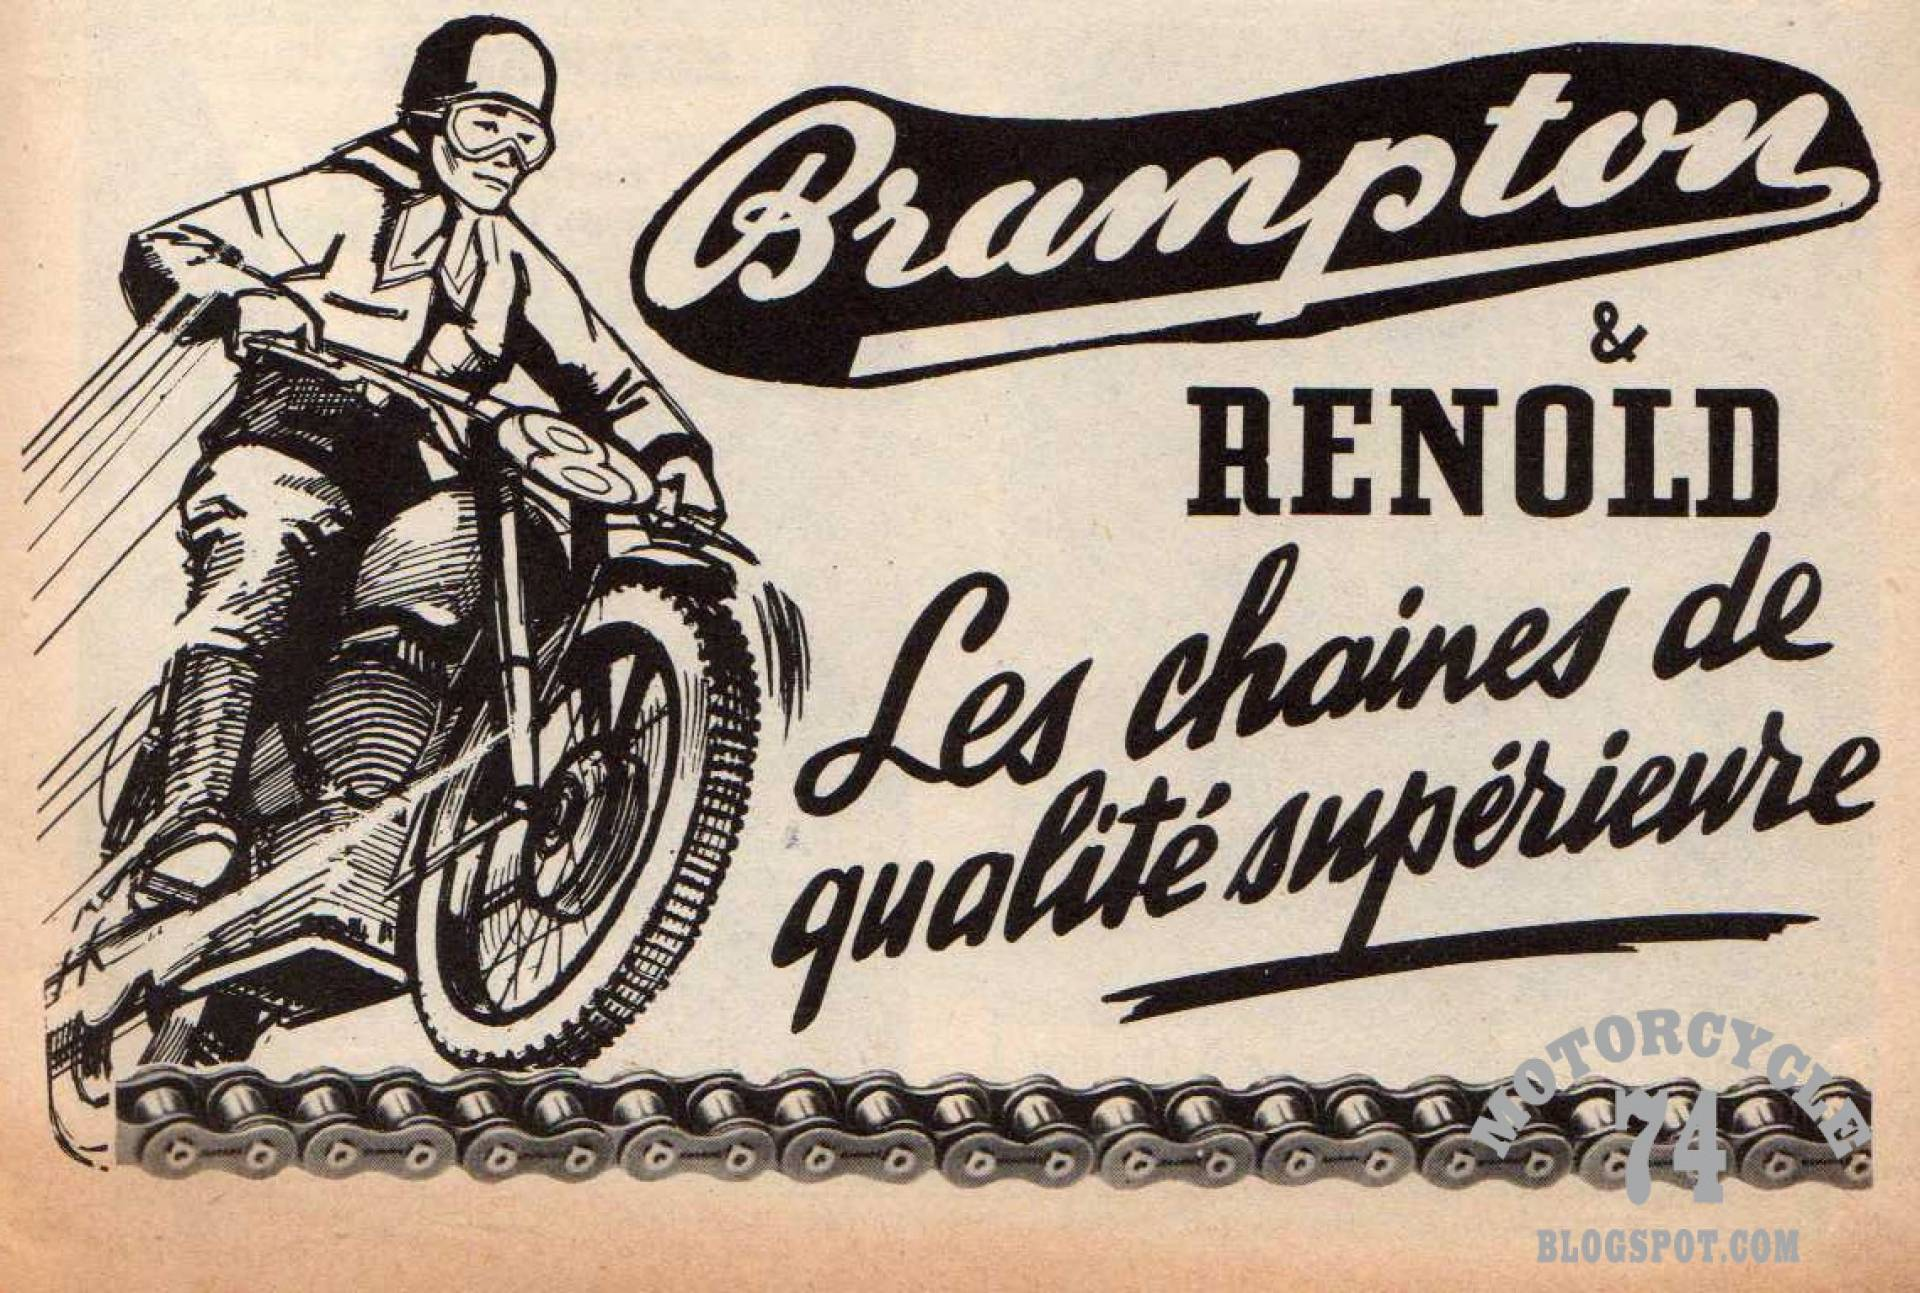 Motorcycle 74 brampton renold motorcycle chains vintage